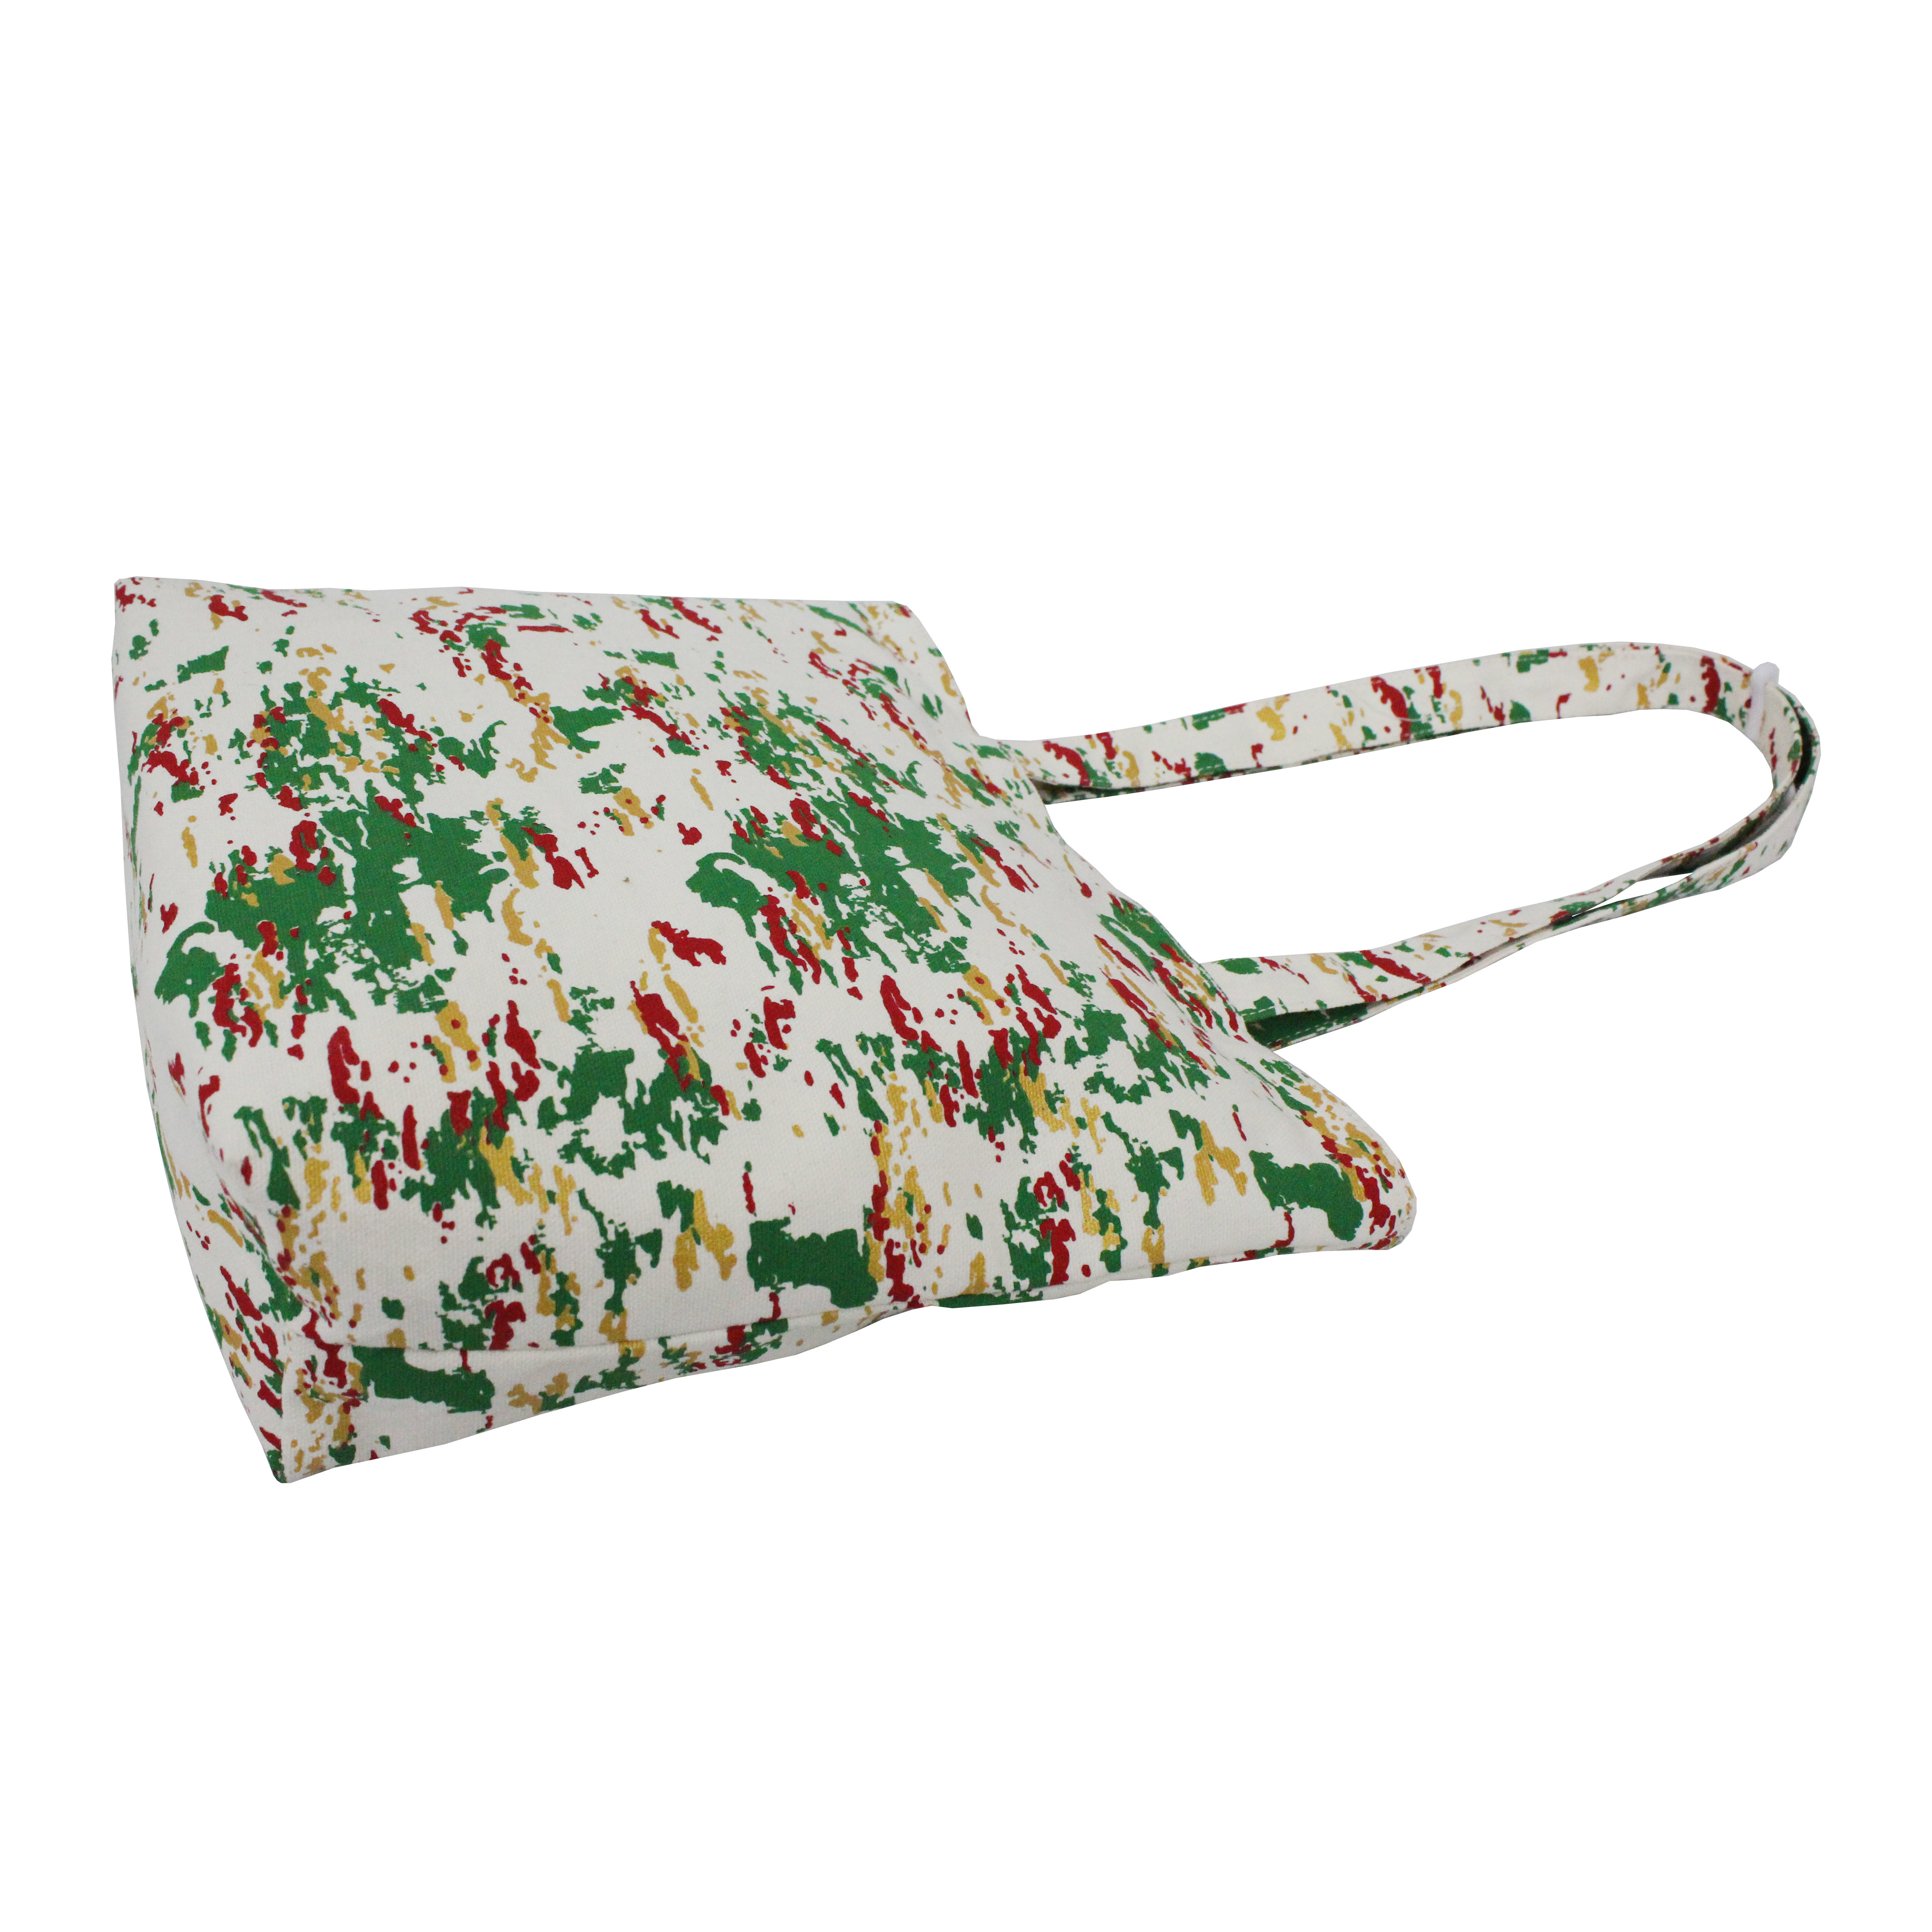 Cotton Shopping Bag With Overall Print